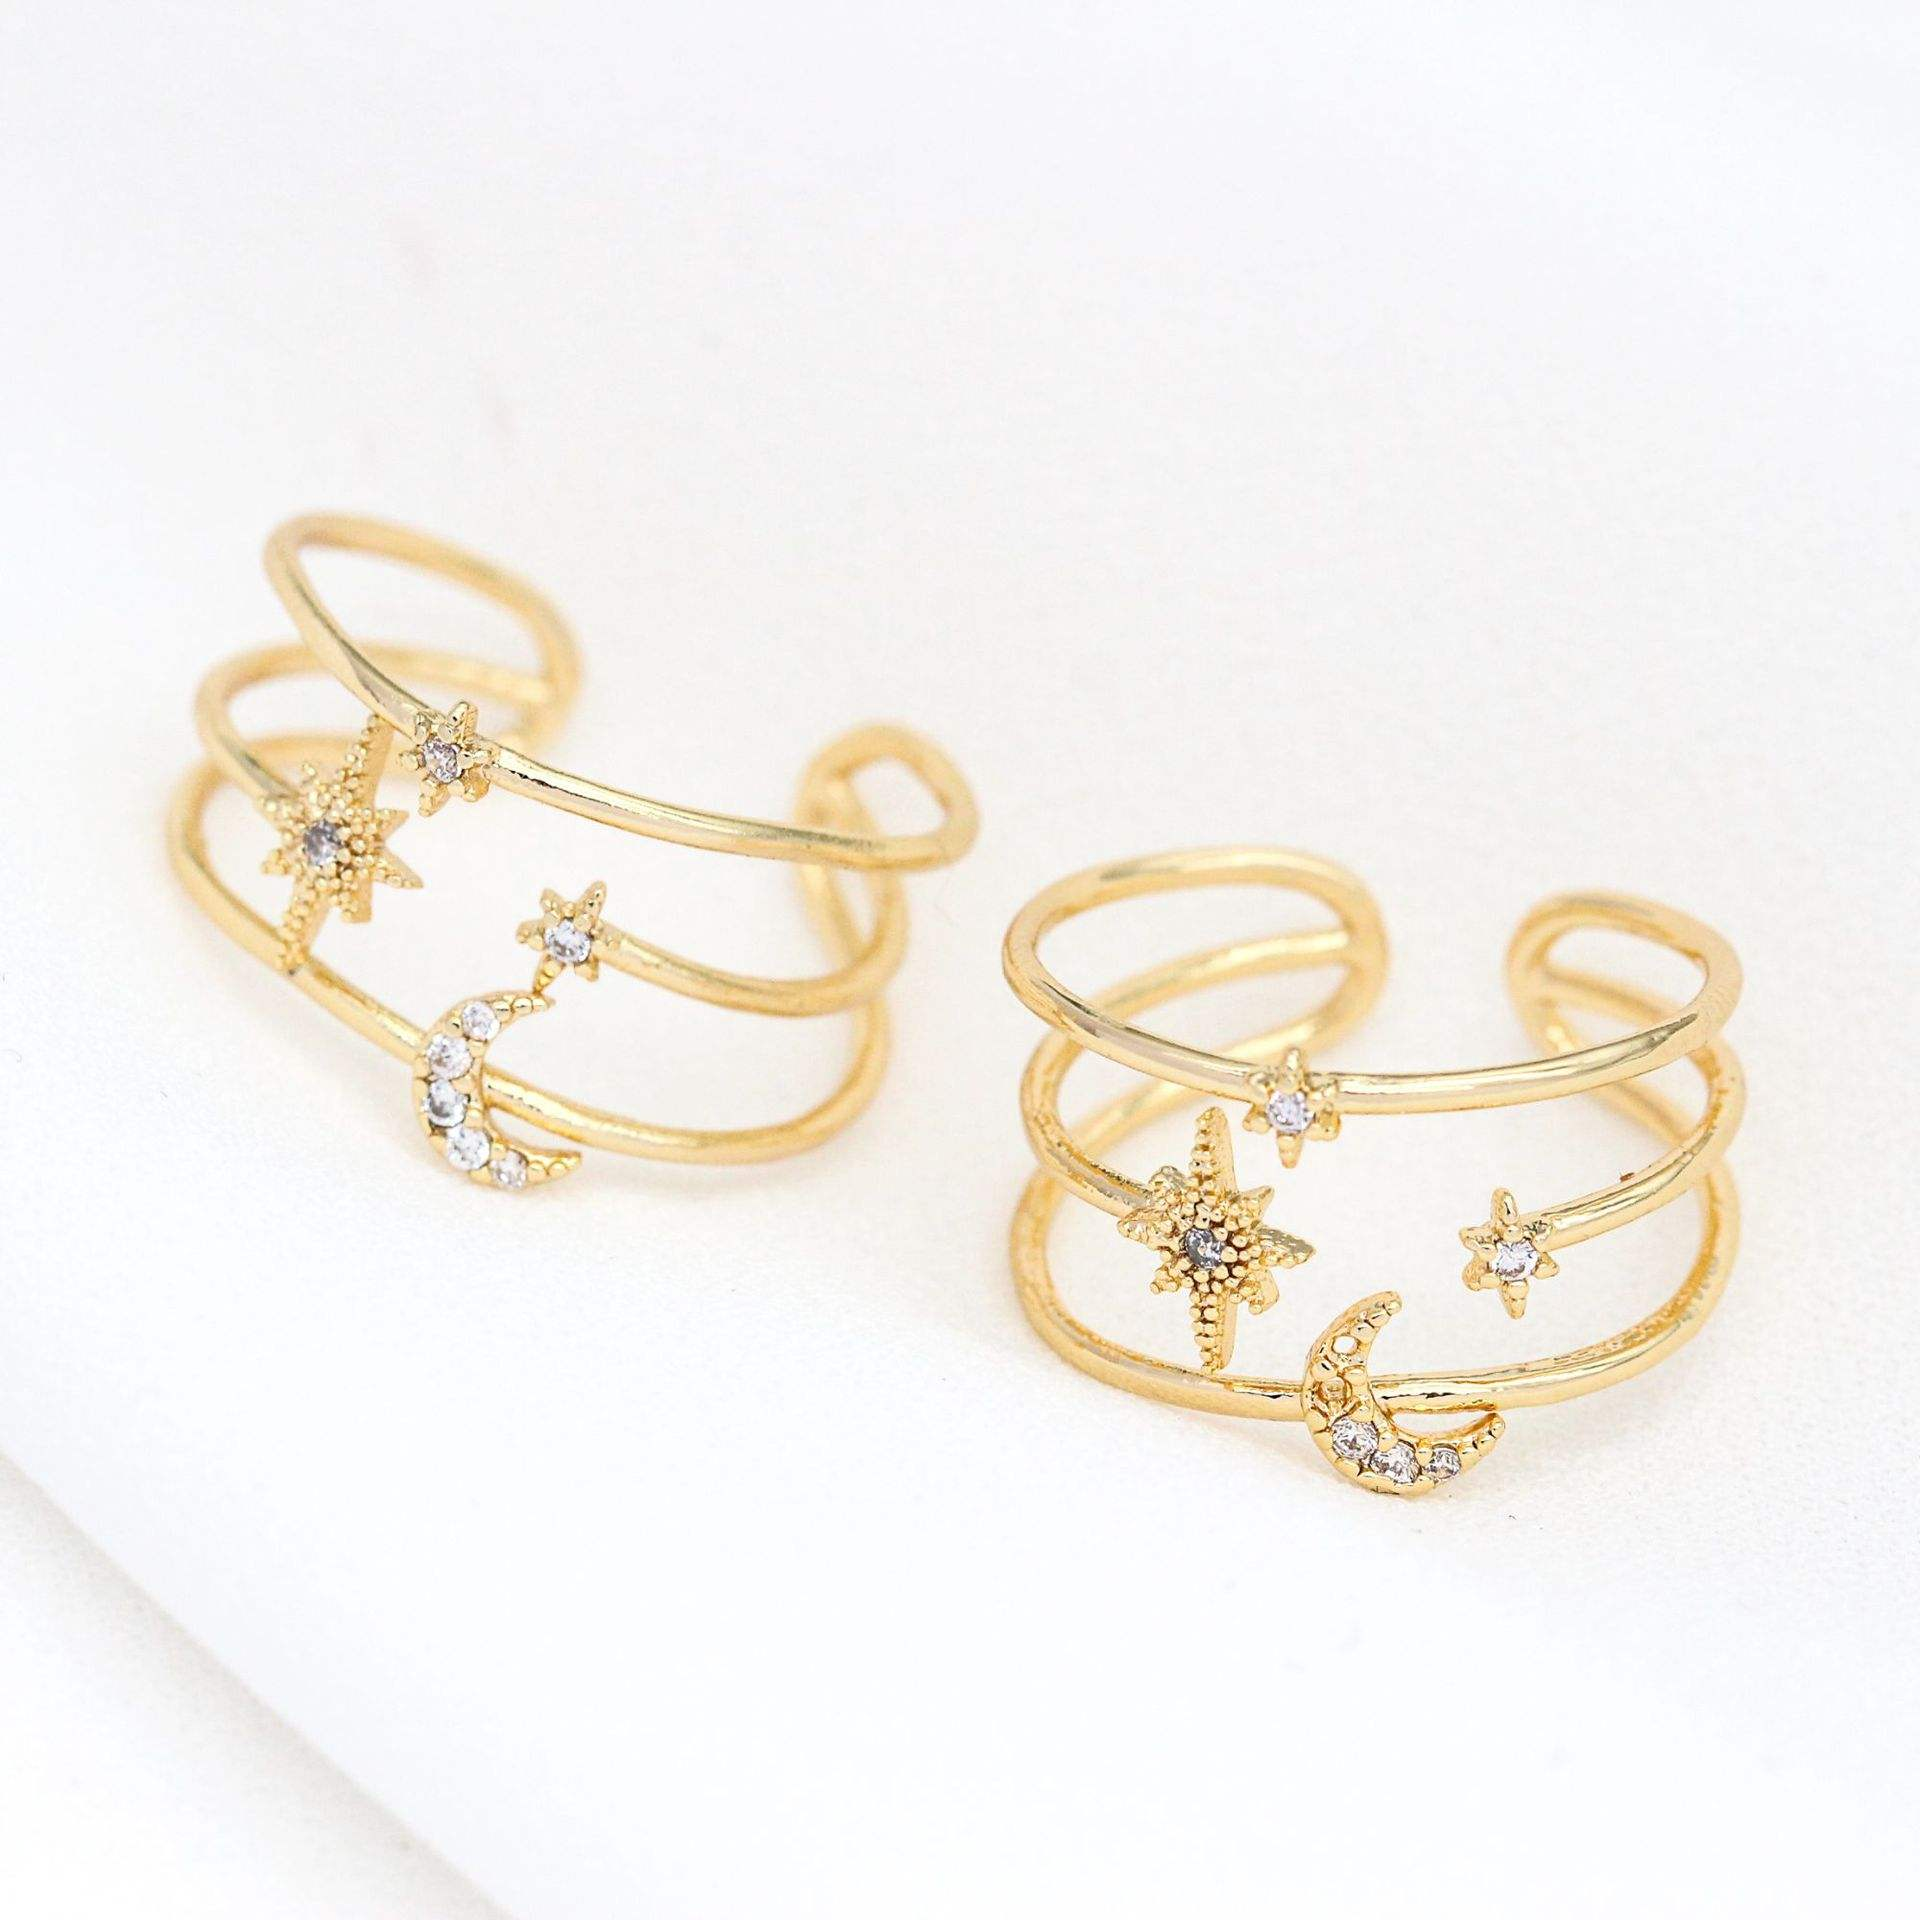 New Design Jewelry 14k Gold Plated Zircon Inlay Moon Star Round Shape Ring